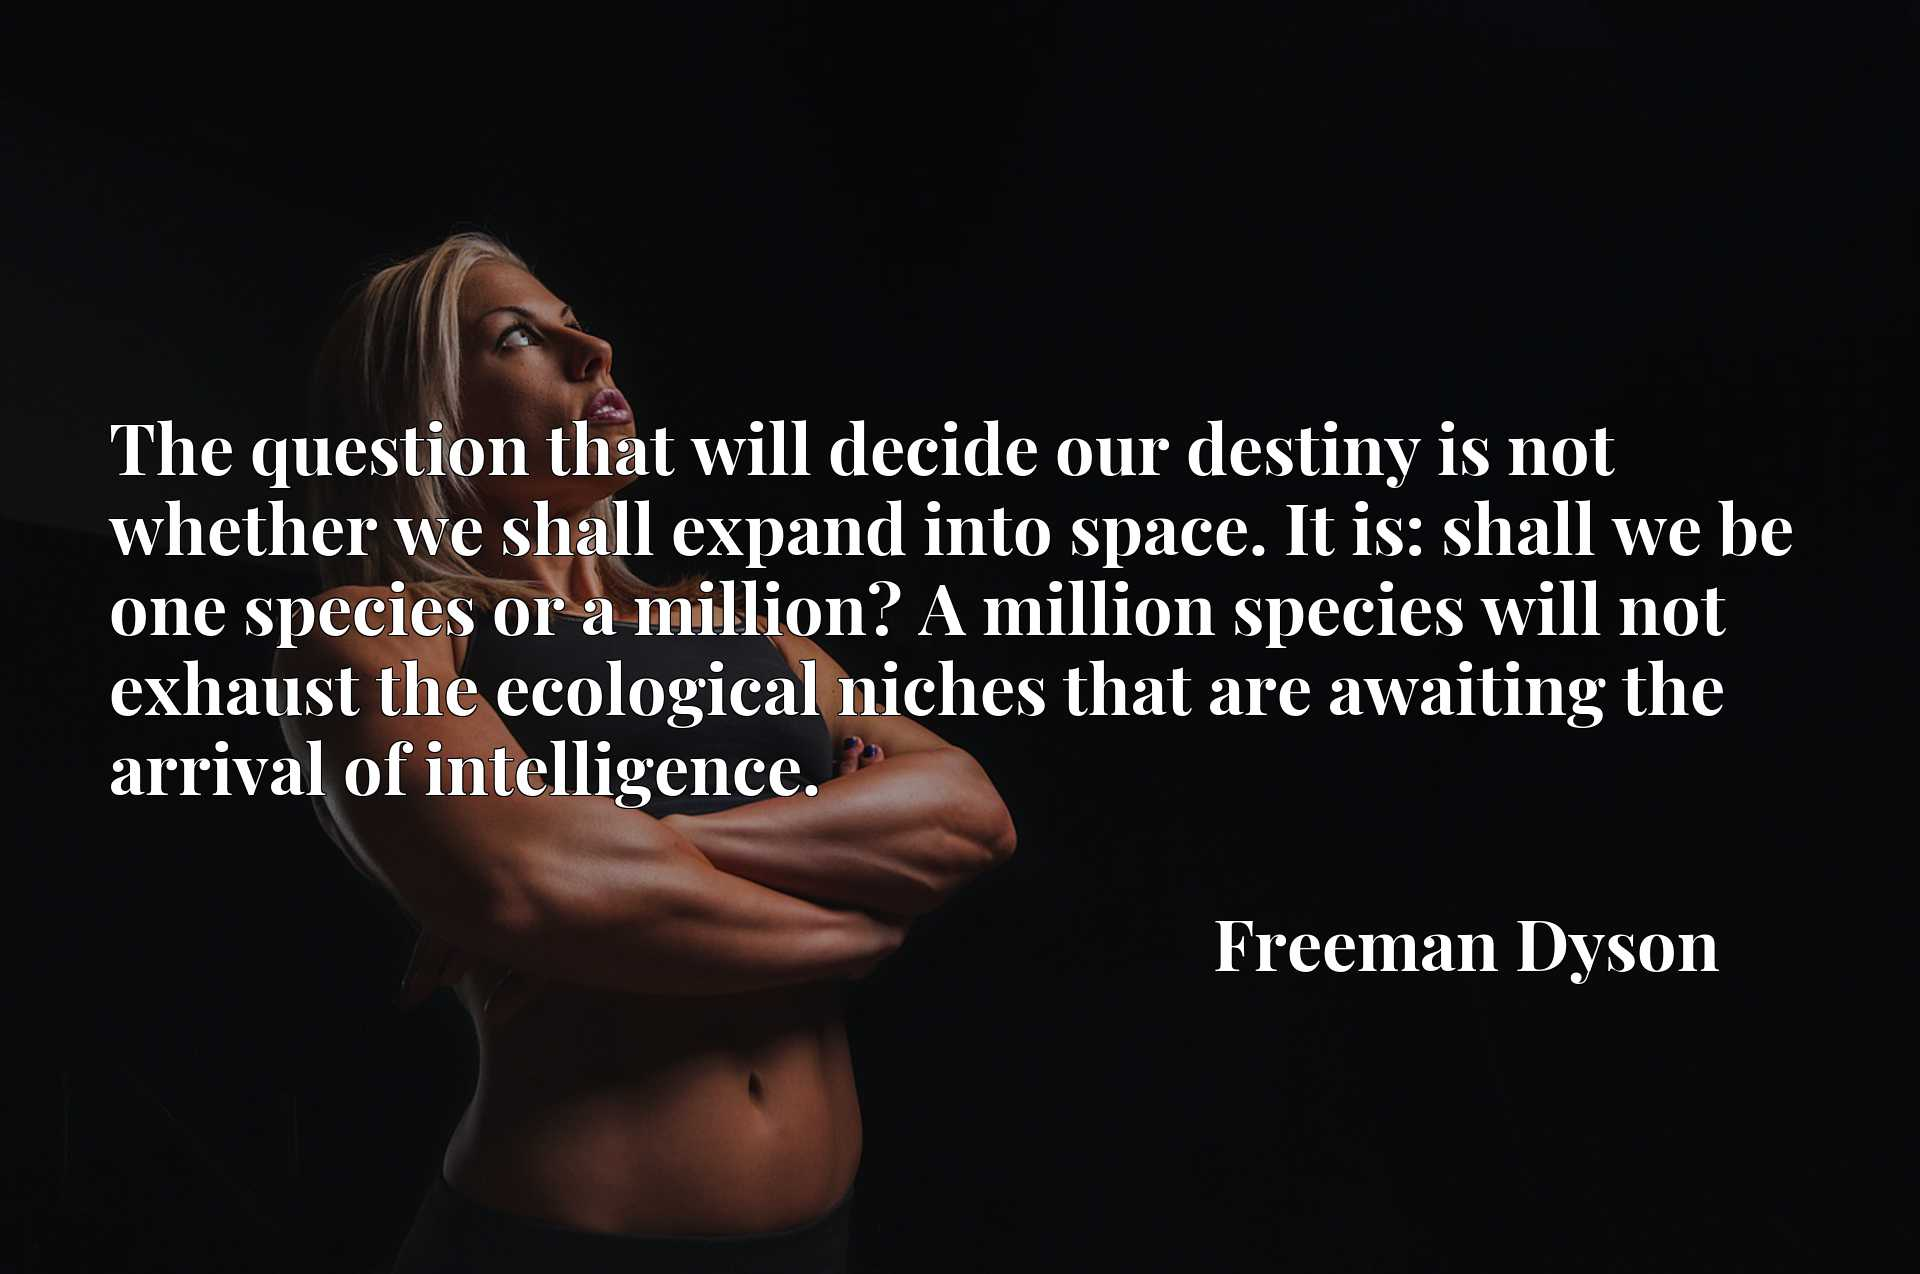 The question that will decide our destiny is not whether we shall expand into space. It is: shall we be one species or a million? A million species will not exhaust the ecological niches that are awaiting the arrival of intelligence.